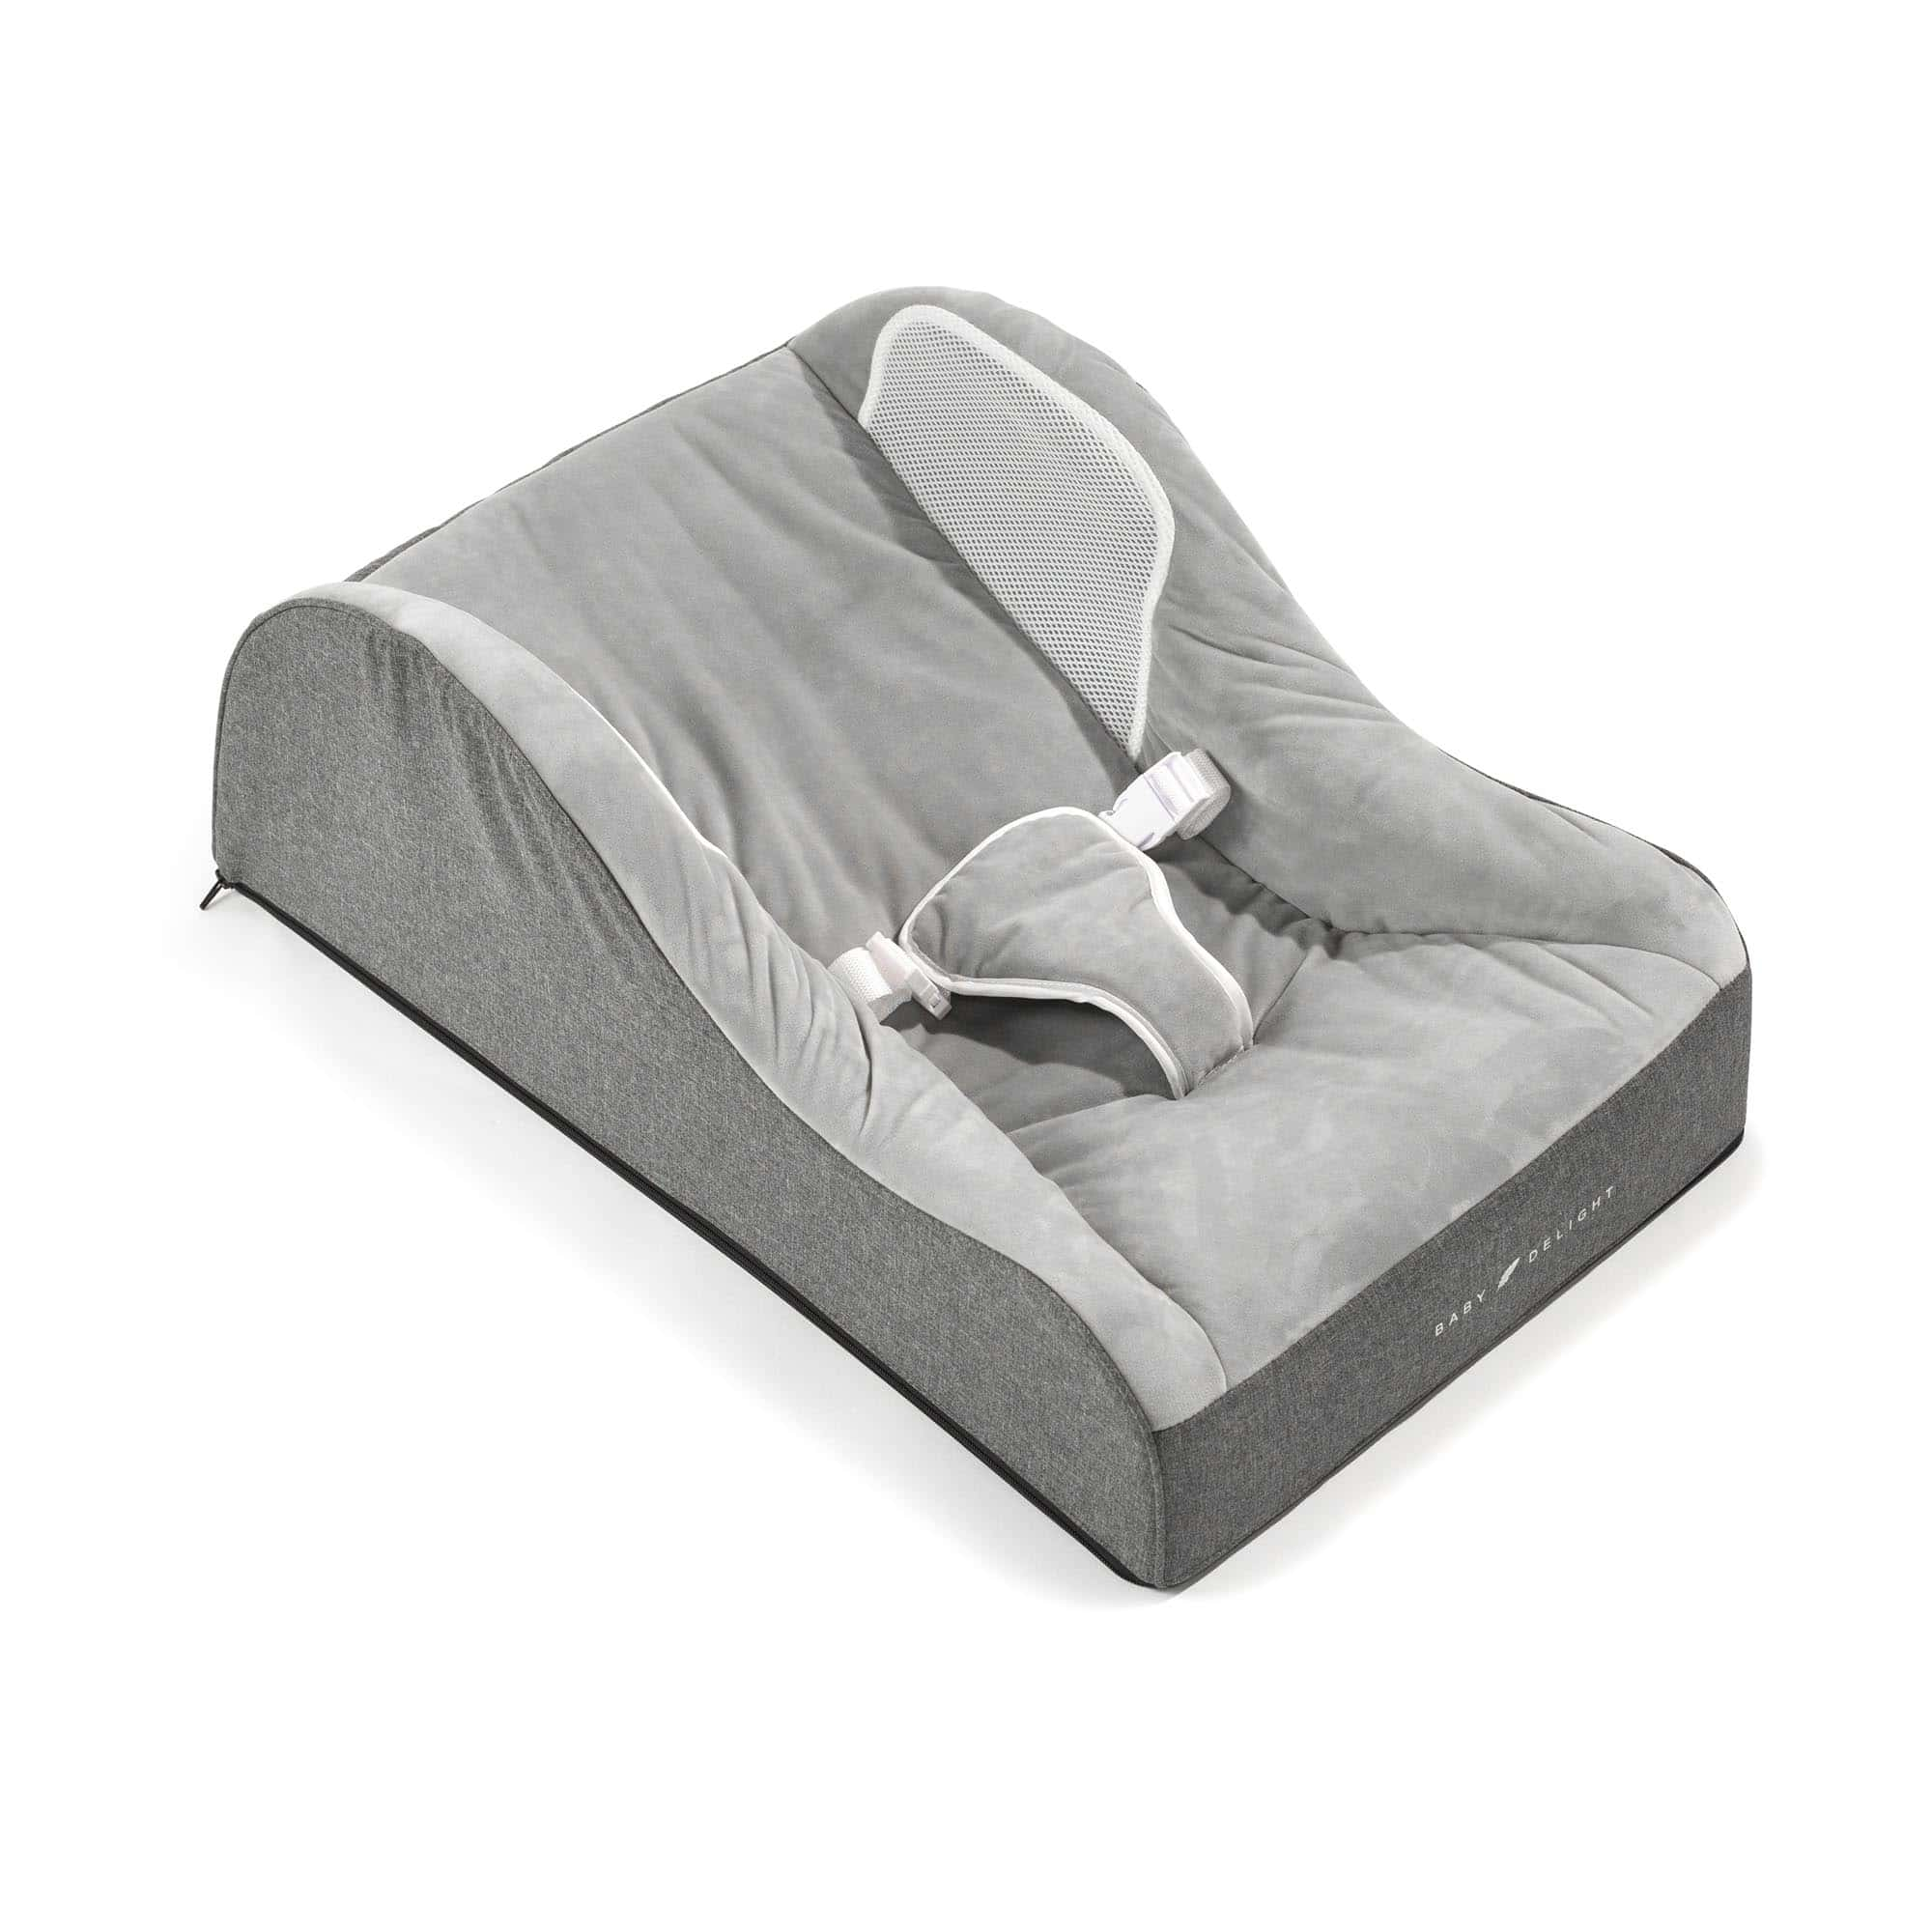 Nestle Nook Portable Infant Lounger Charcoal Tweed Baby Delight Inc